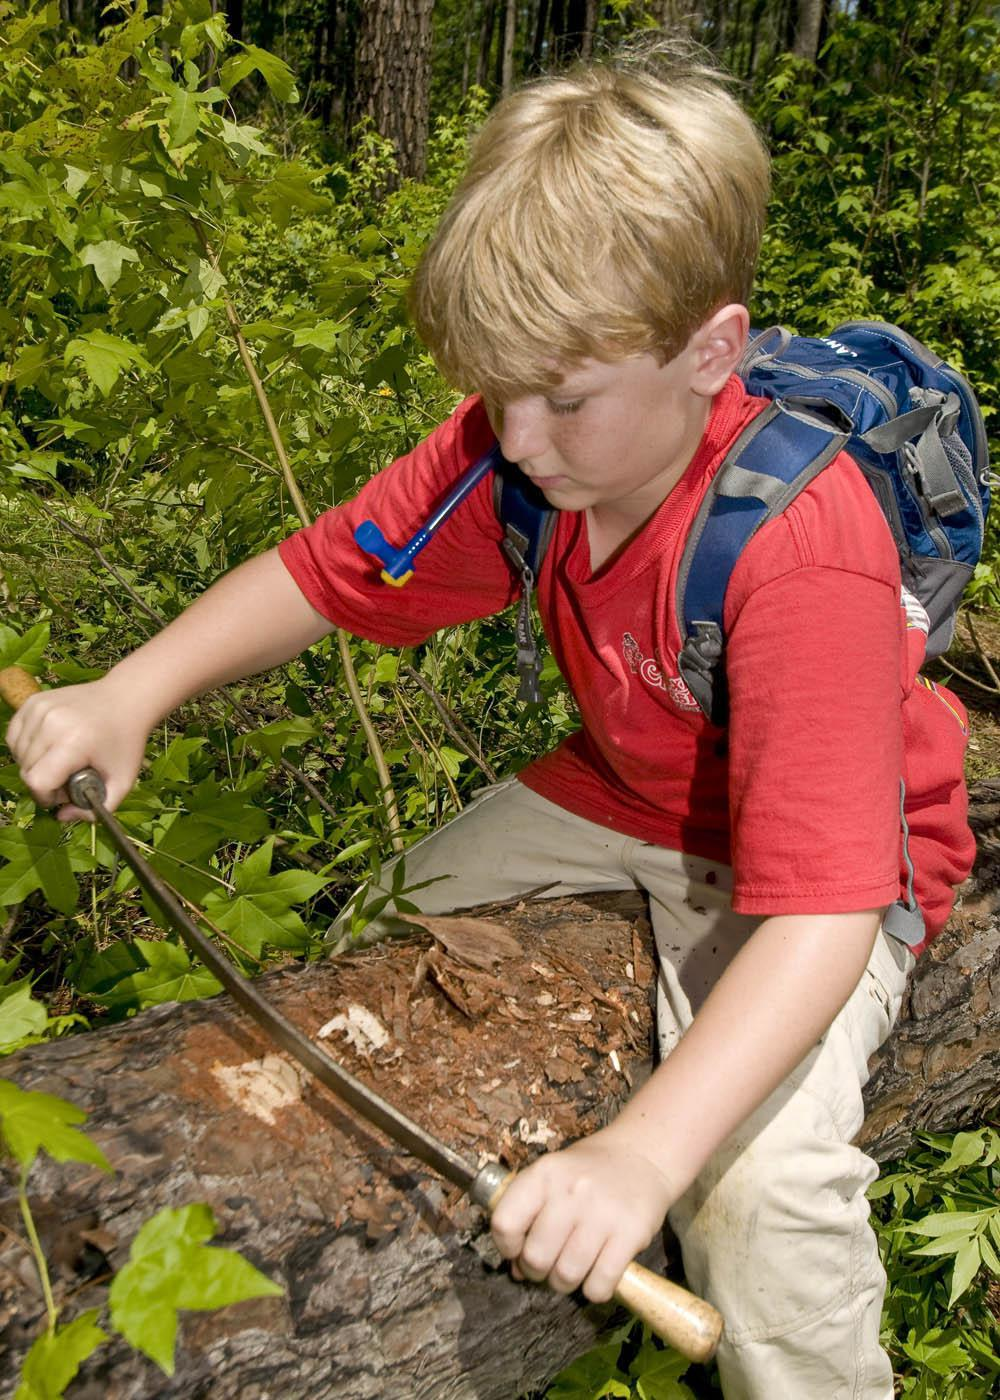 Peter Drackett, 11, of Long Beach scrapes the bark of a dead tree at the Noxubee Wildlife Refuge to find pine bark beetles. Drackett attended the Mississippi State University's annual Basic Insect and Plant Ecology in 2009. (Photo by Kat Lawrence)